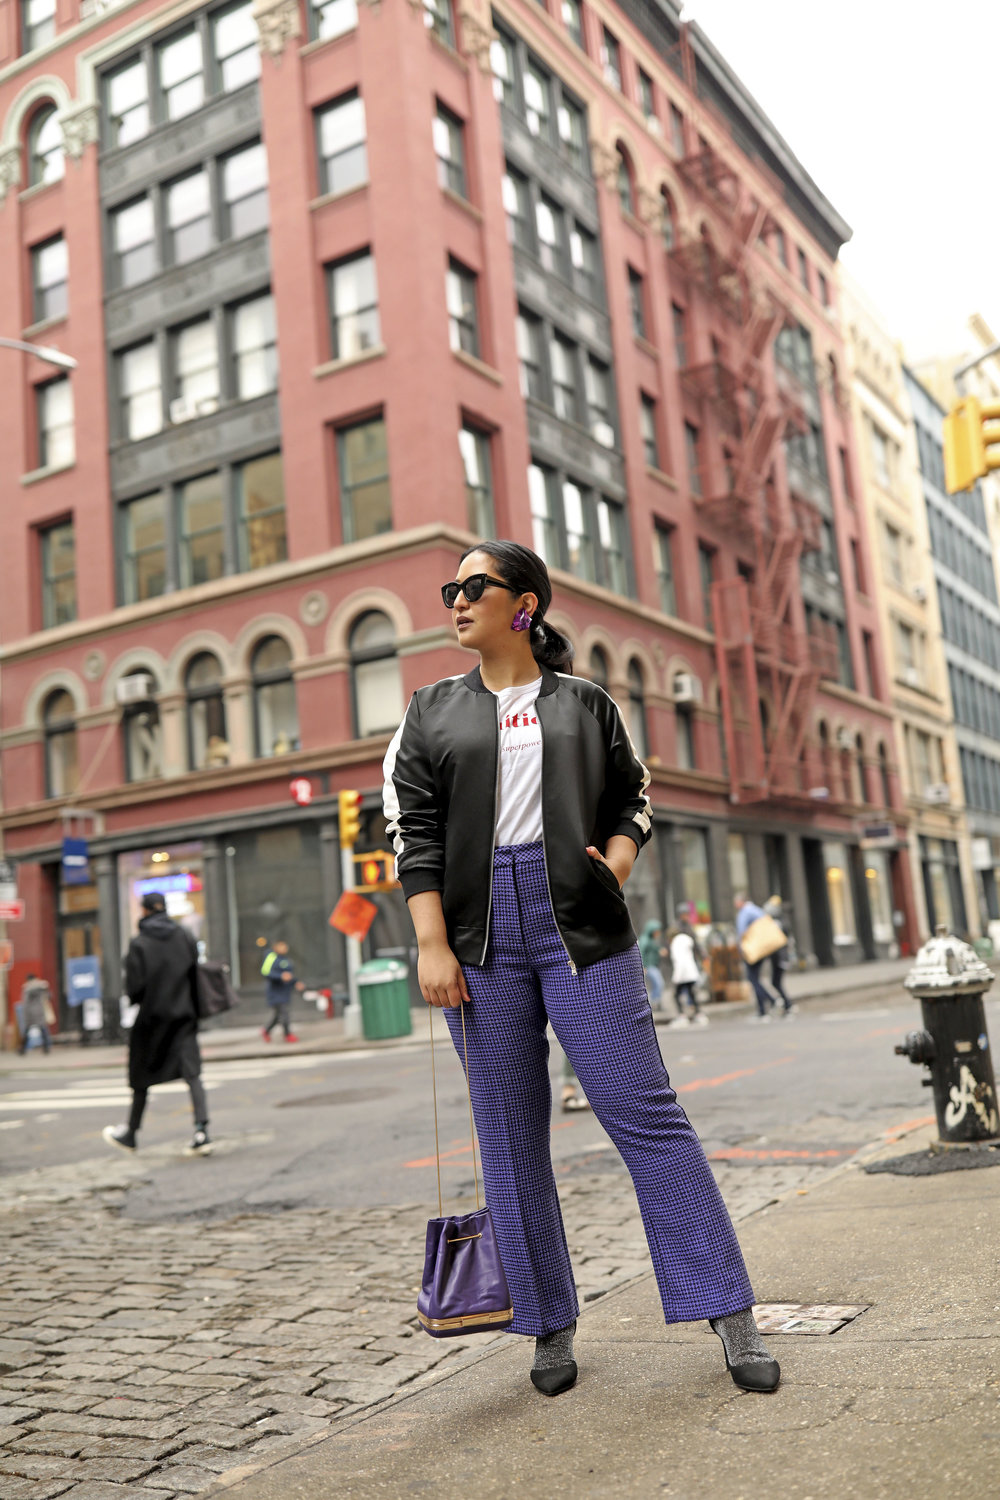 Purple Pants Casual Suit Look Bomber Jacket_1.jpg